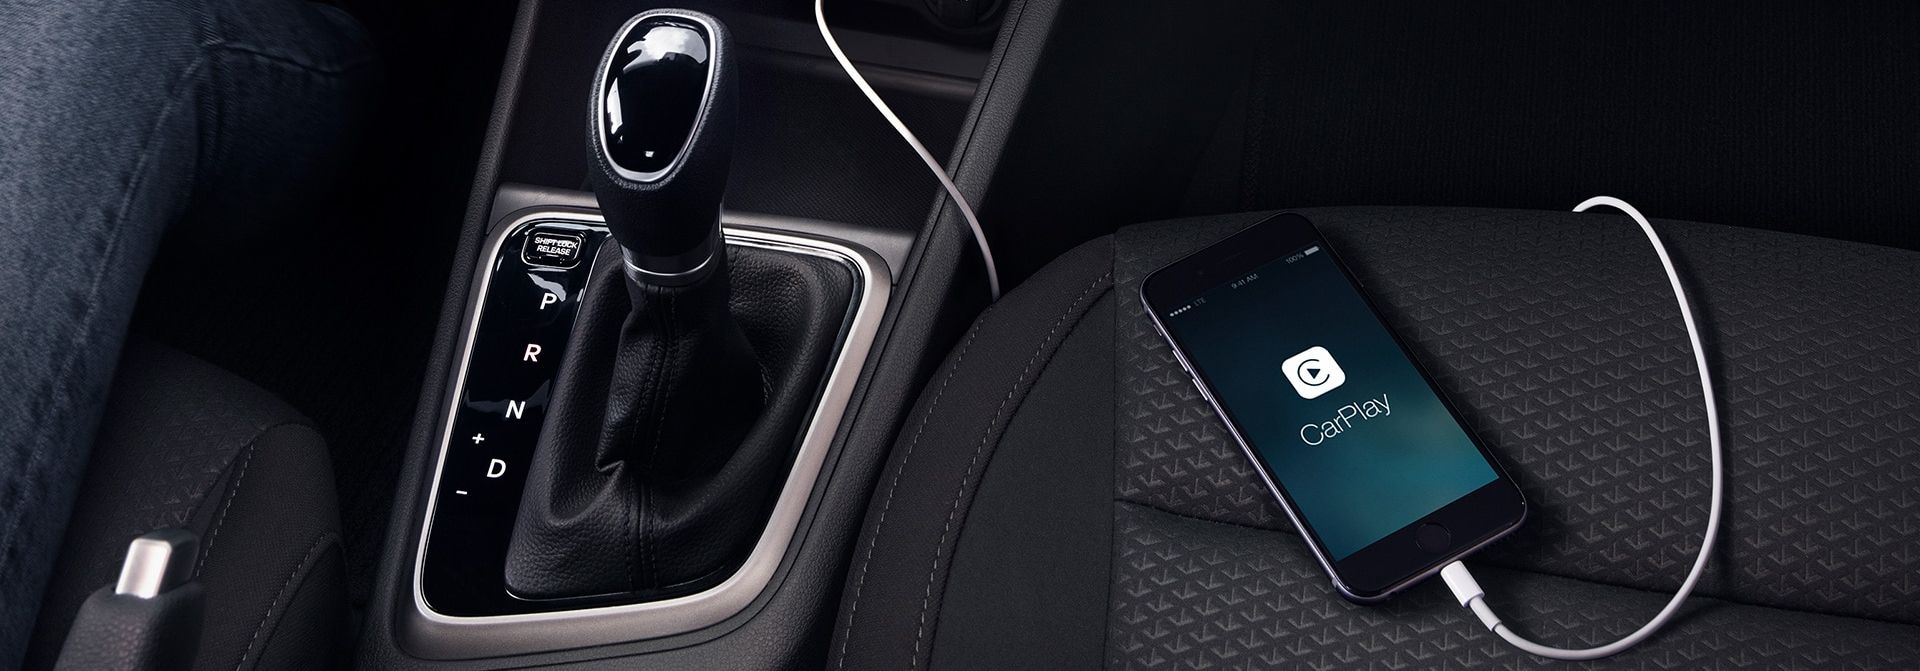 Stay Connected in the Hyundai Accent